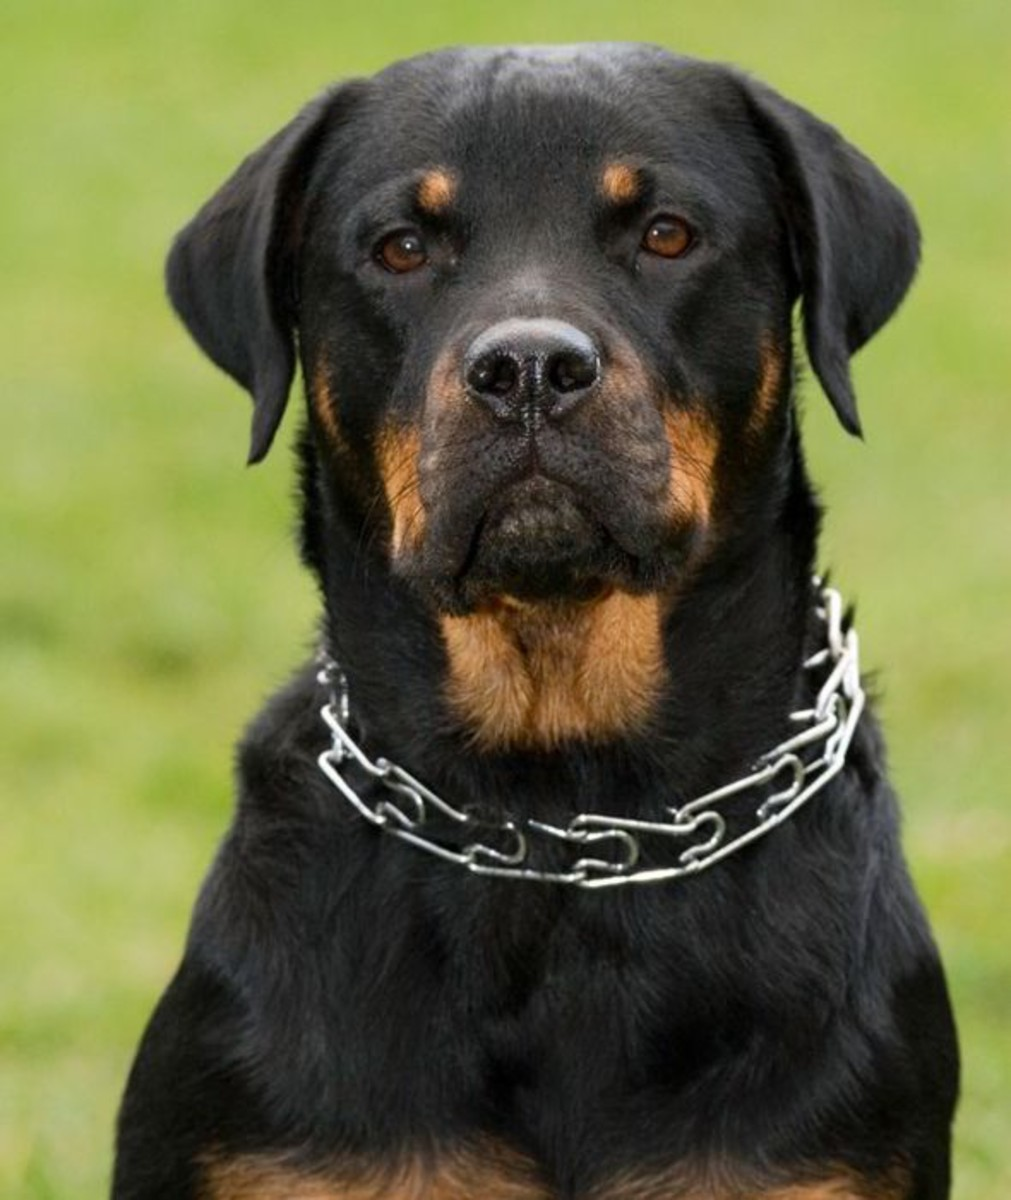 Rottweilers can be overprotective of their family and home and also have a high prey drive.